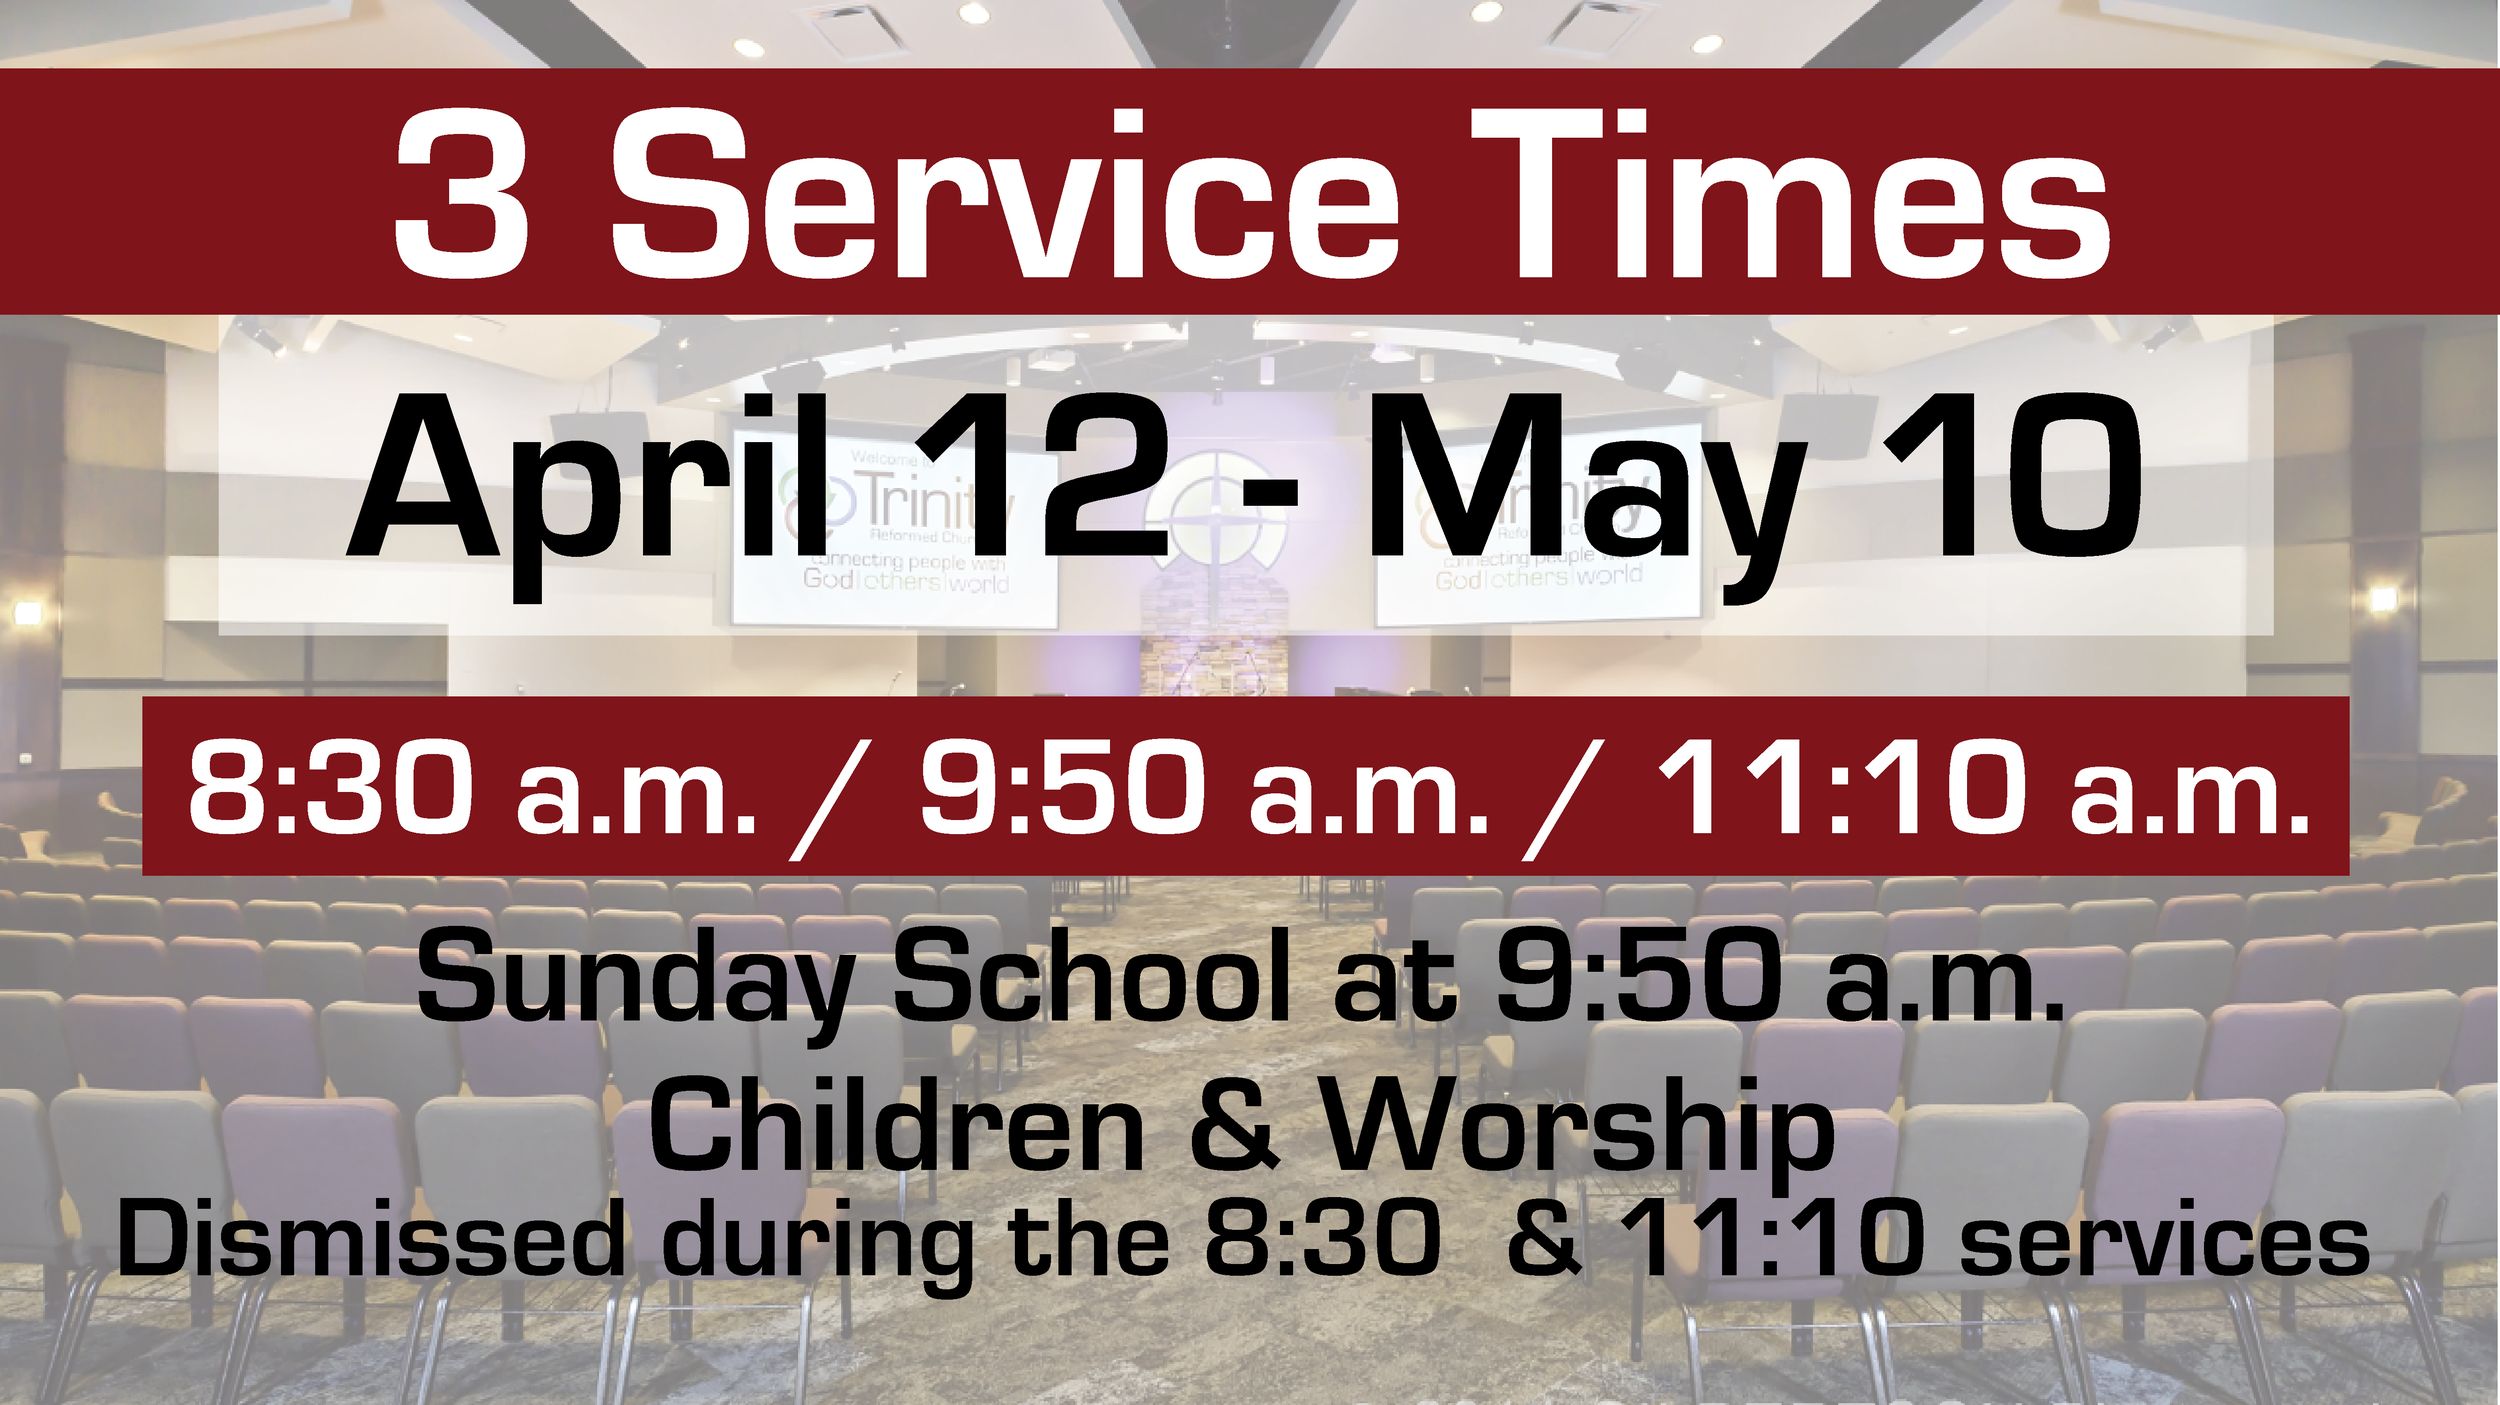 3 Service Times